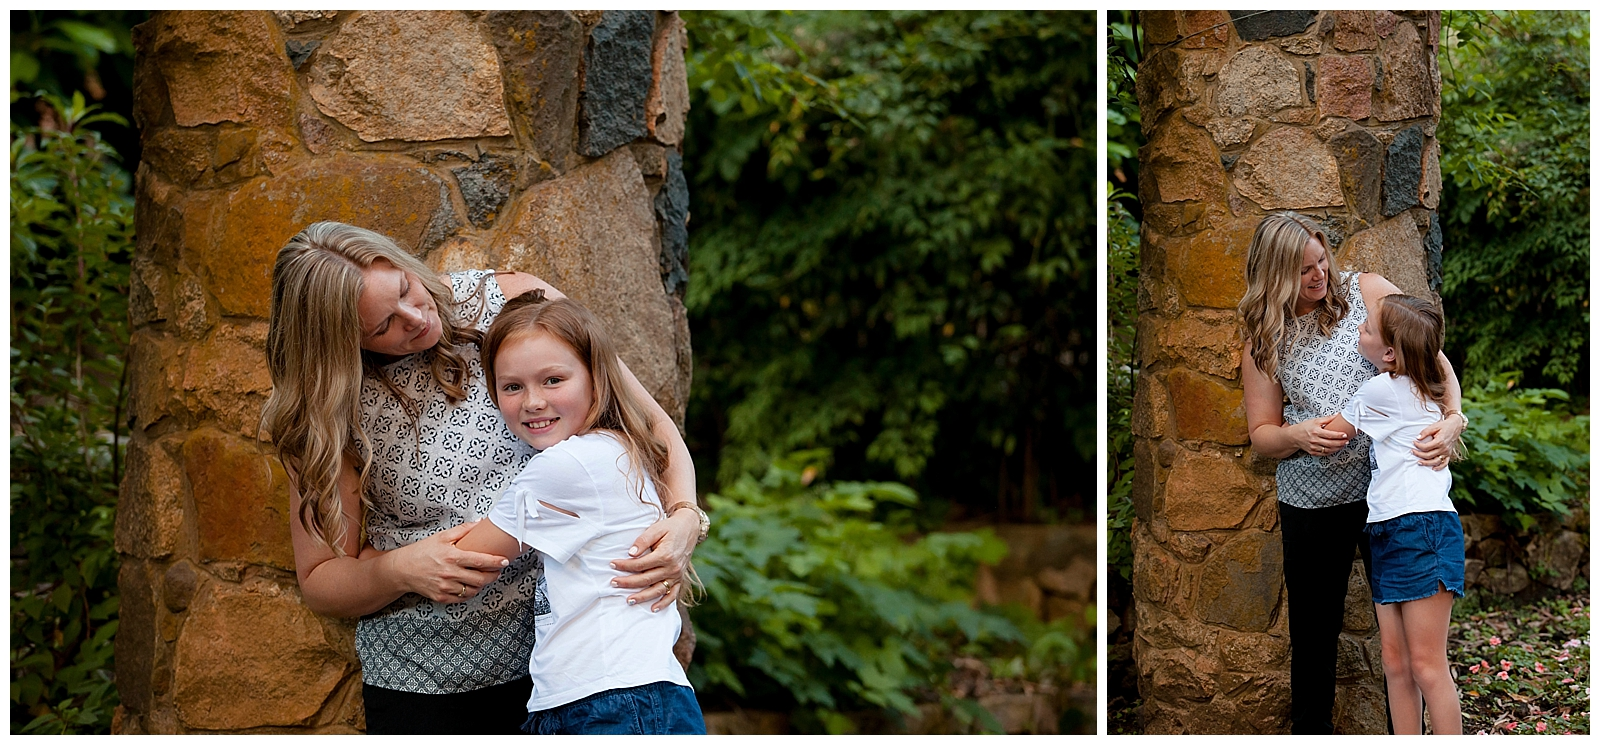 Perth family photography at Araluen Botanic Park in Roleystone, Perth